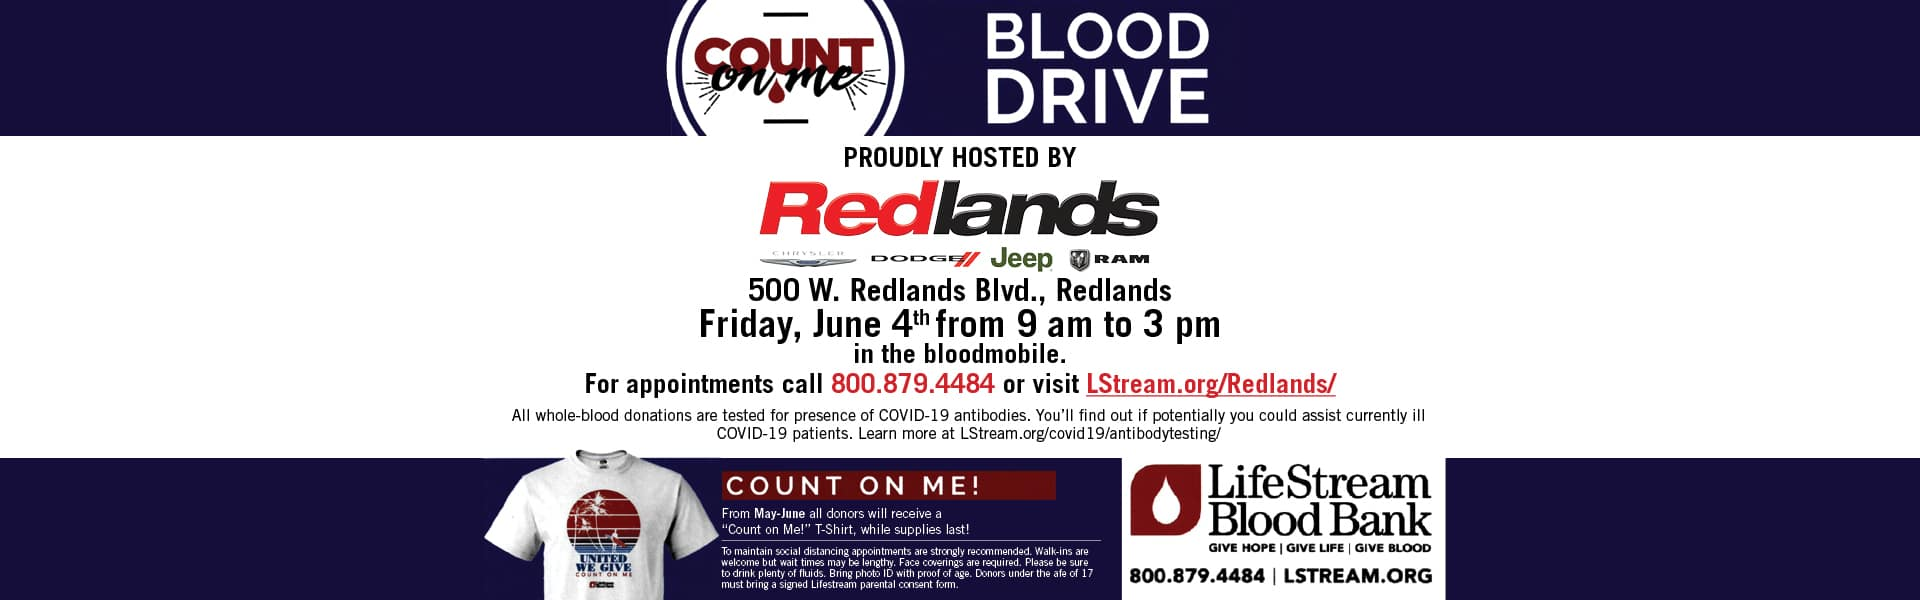 041.434.01_Redlands_CDJR_1920x600_Blood_Drive_Dealer_Web (1)